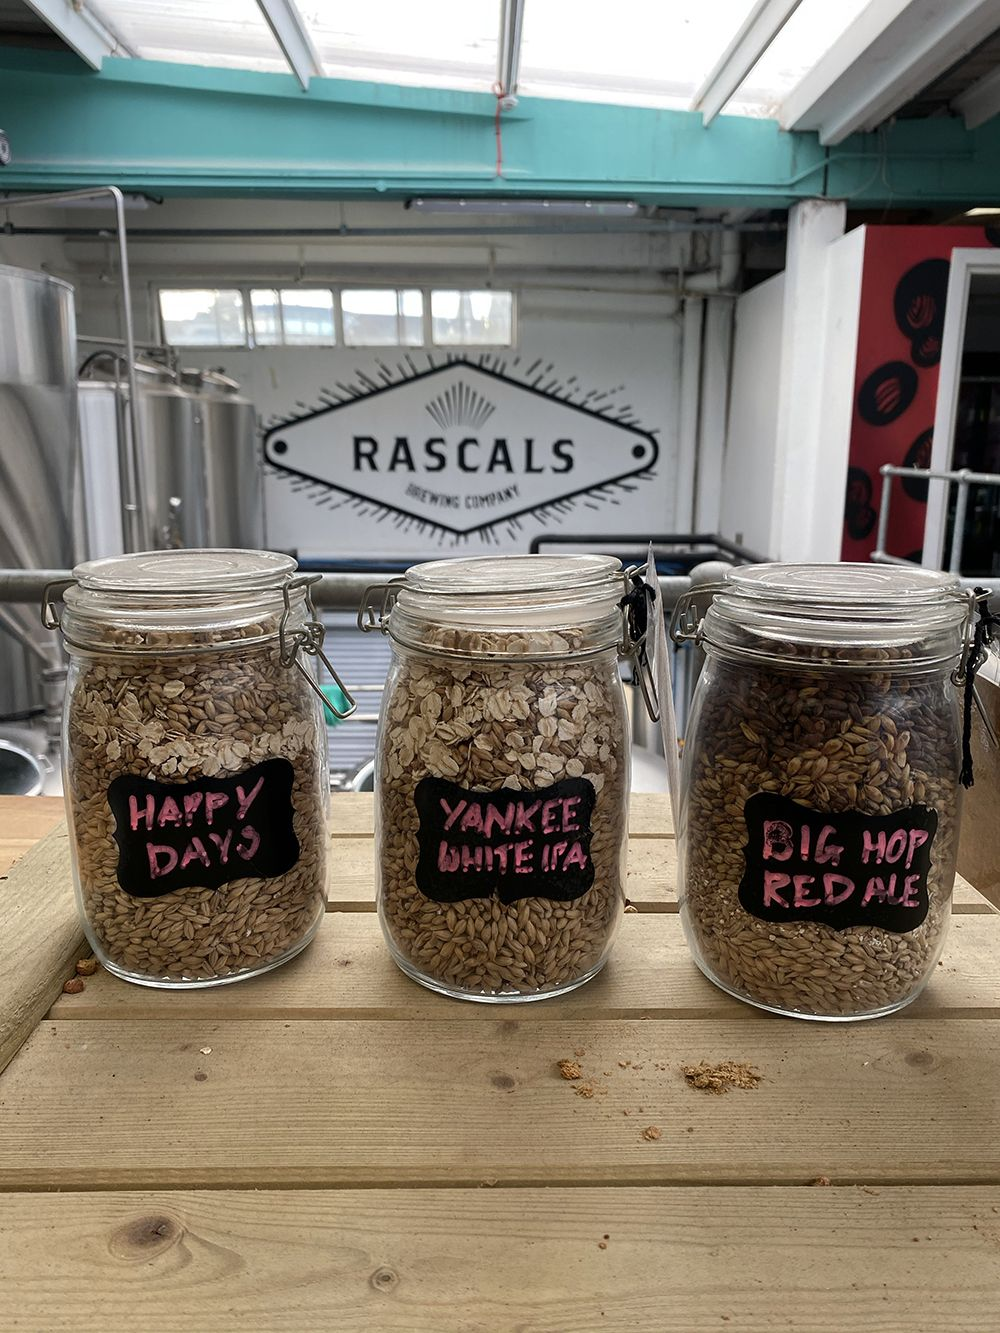 Some of the ingredients used in Rascals' most famous brews.